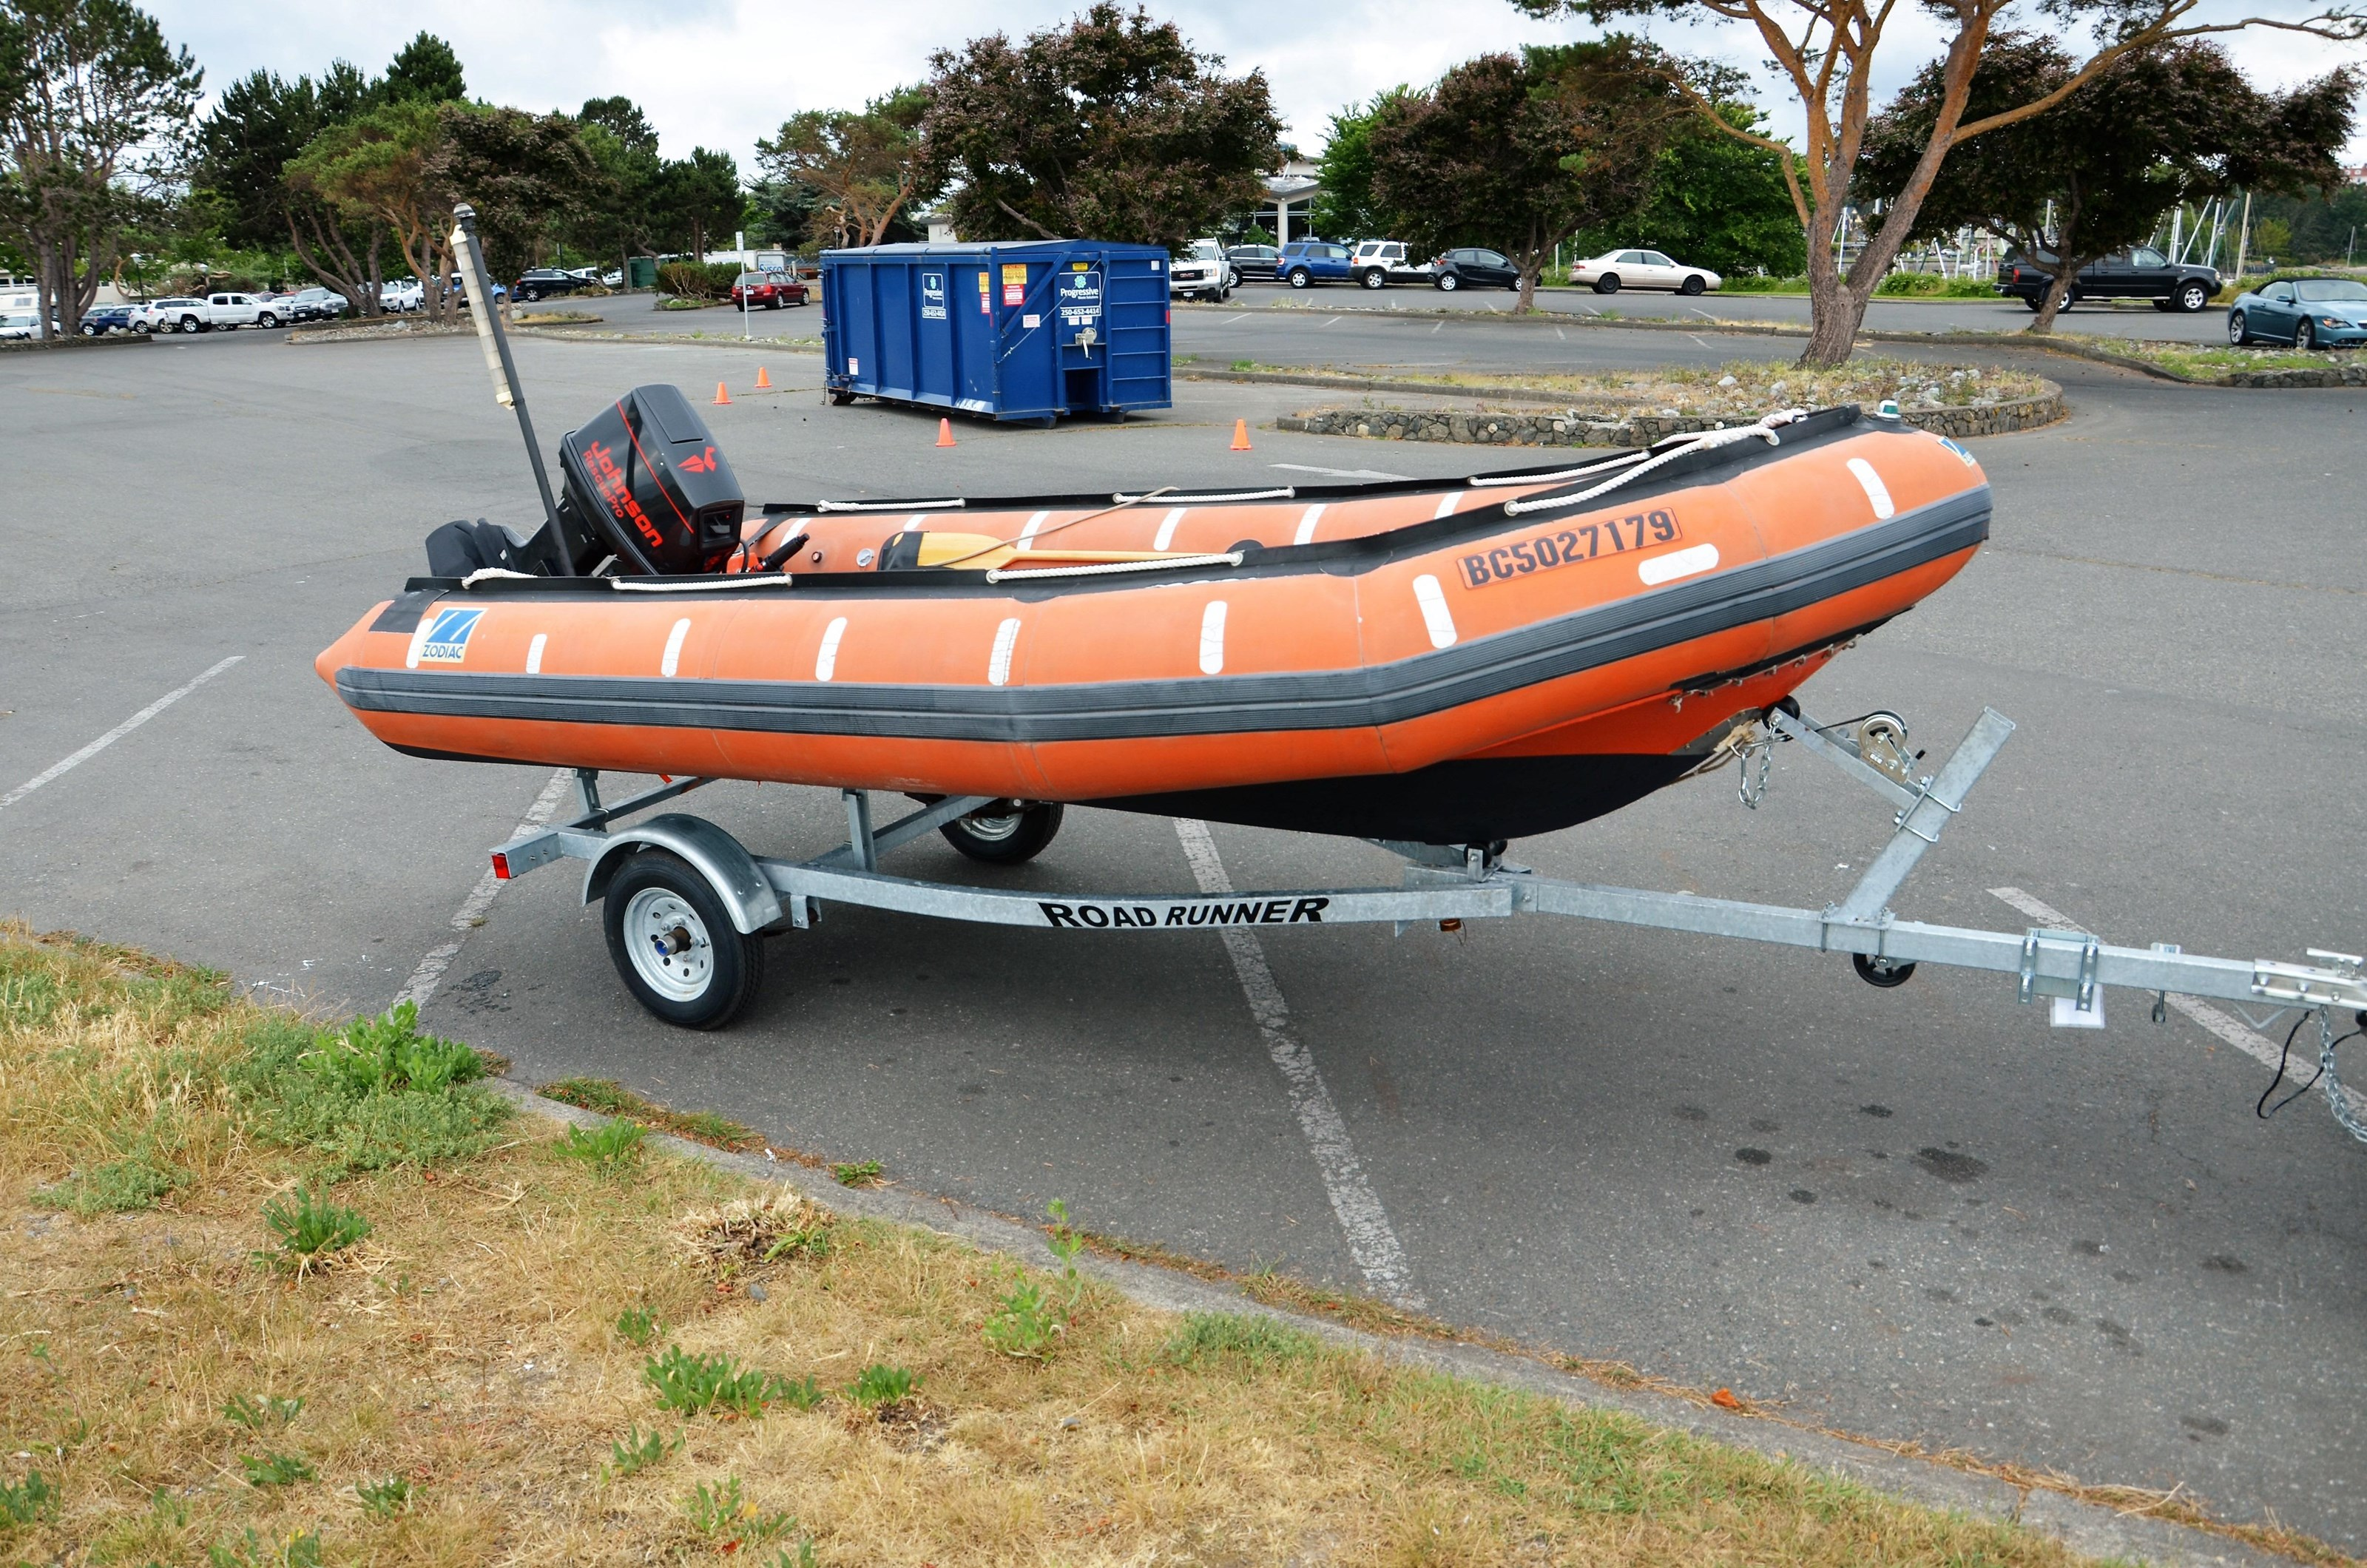 Used Boats: Used Zodiac Boats For Sale On Craigslist